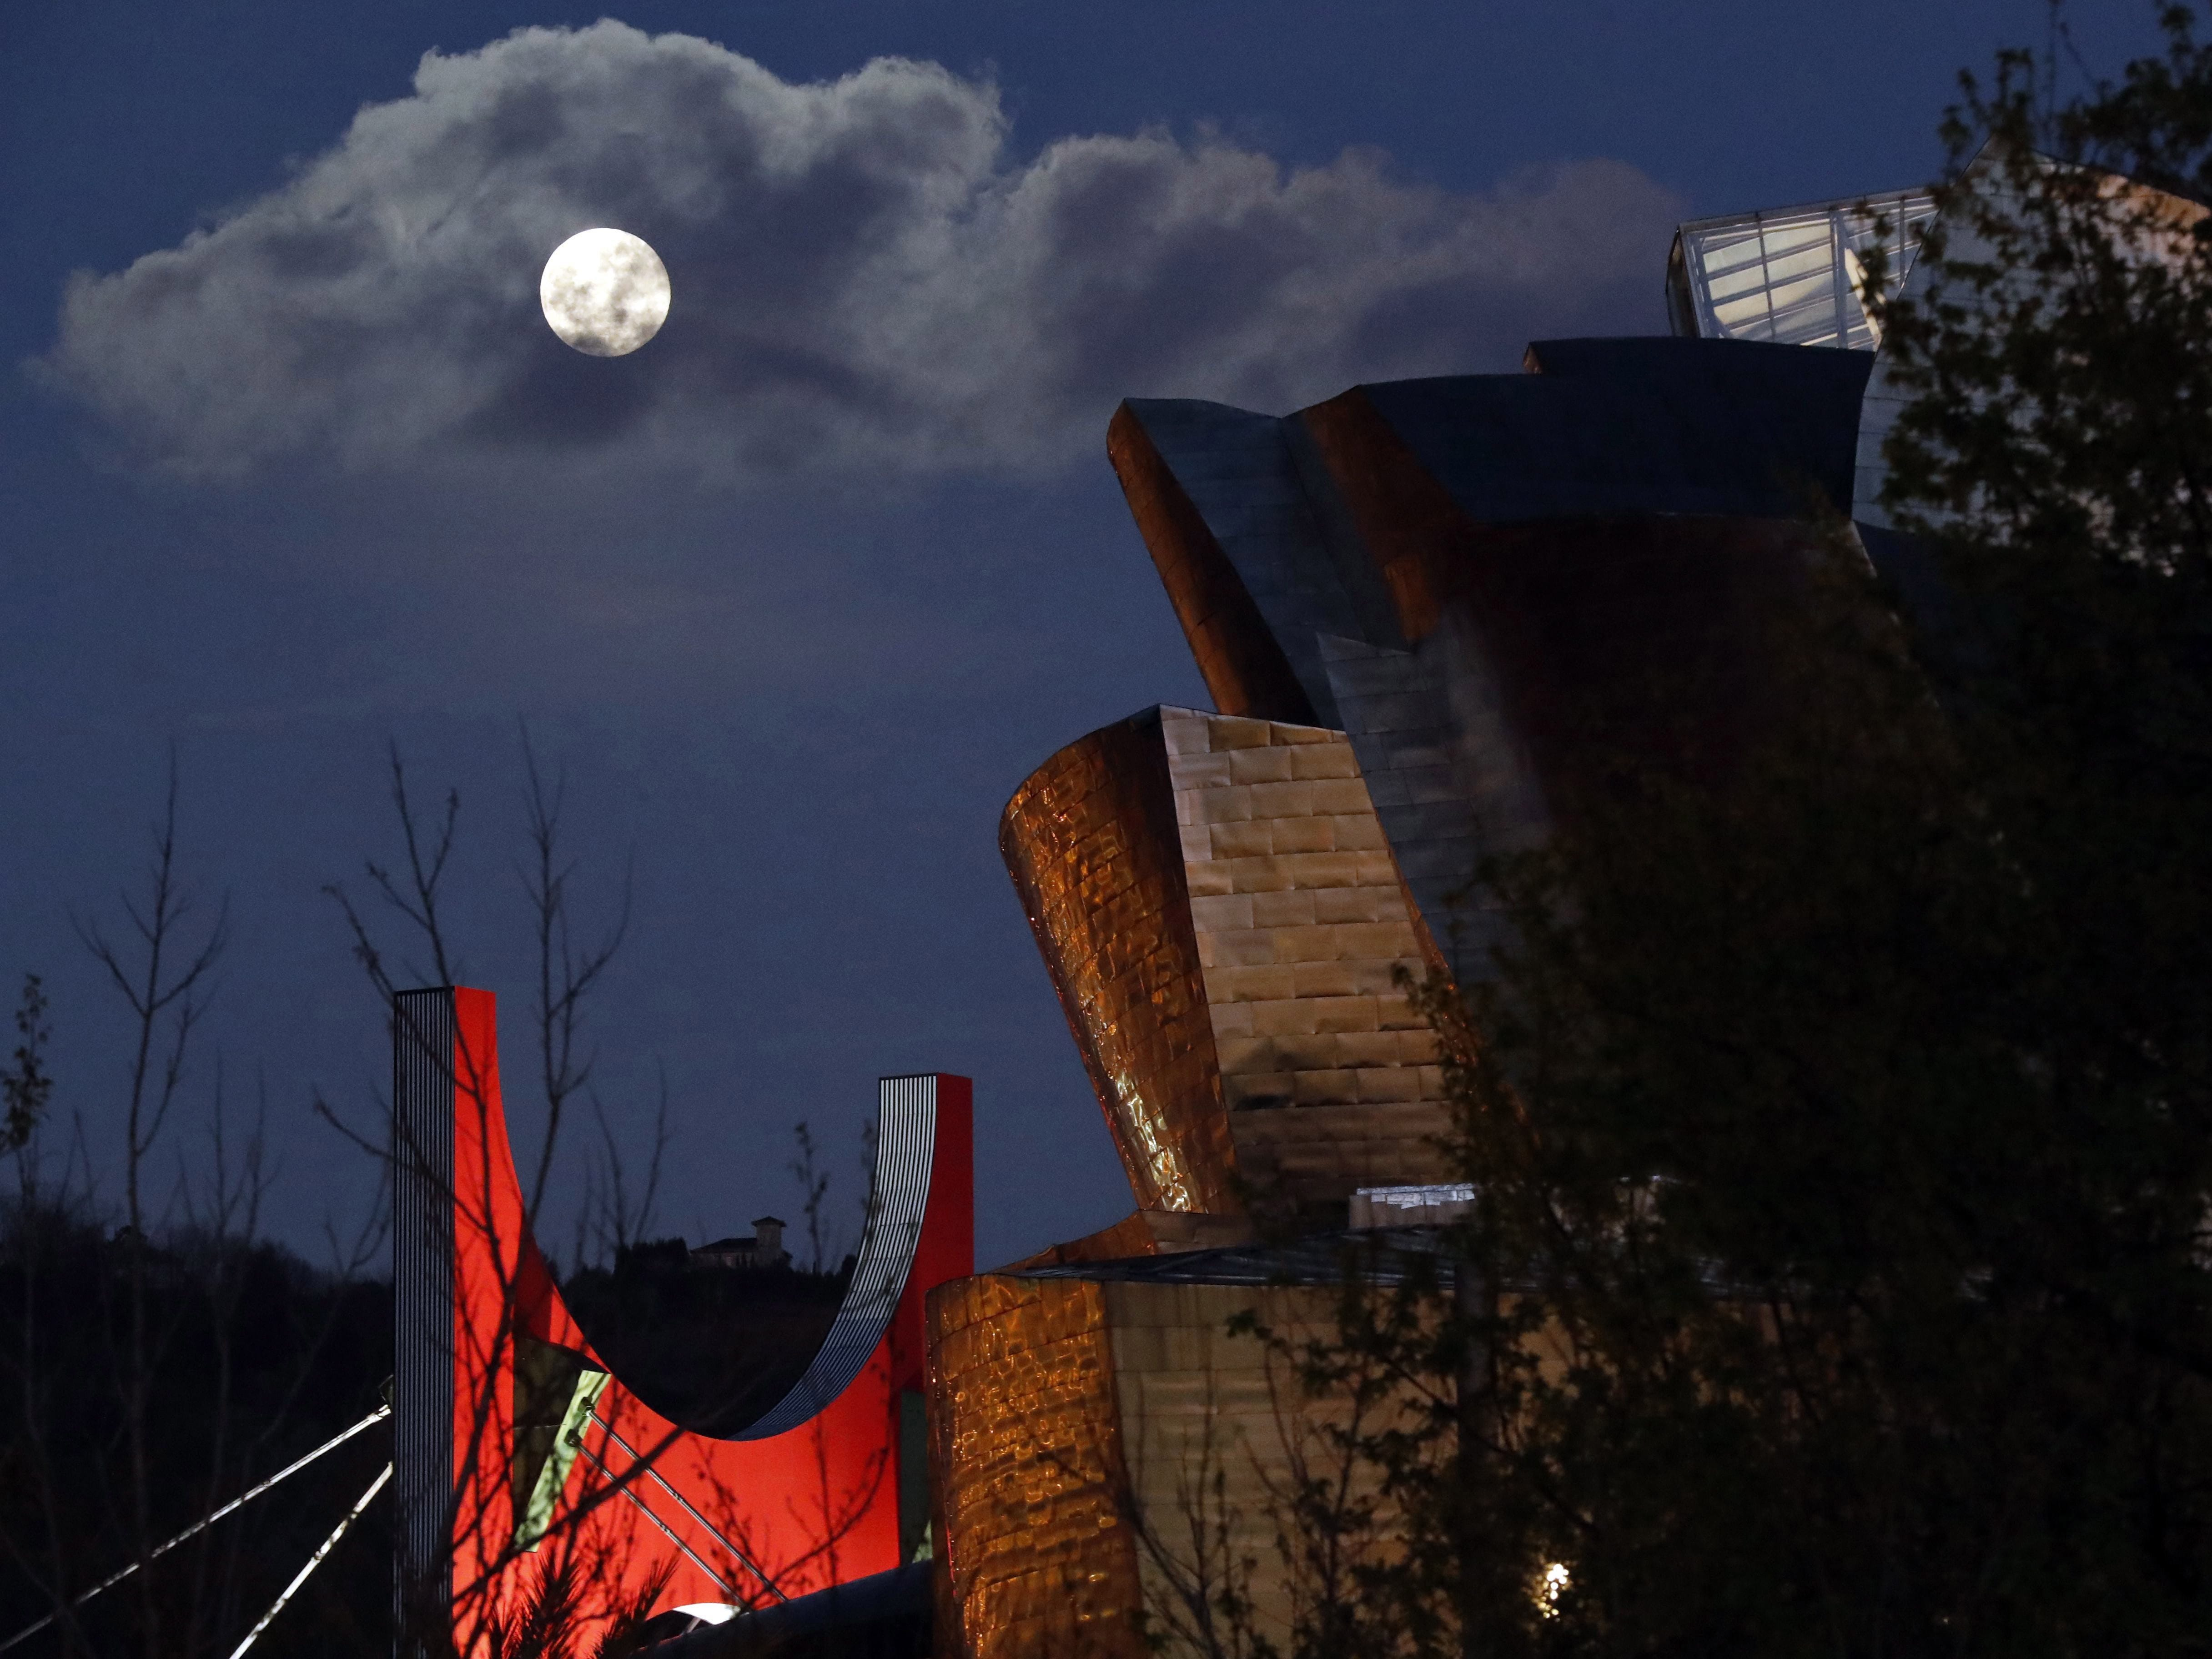 epa07451621 A view of the supermoon that announces the start of the spring over the Guggenheim Museum in Bilbao, Spain, 20 March 2019.  EPA-EFE/LUIS TEJIDO ORG XMIT: GRAF7472